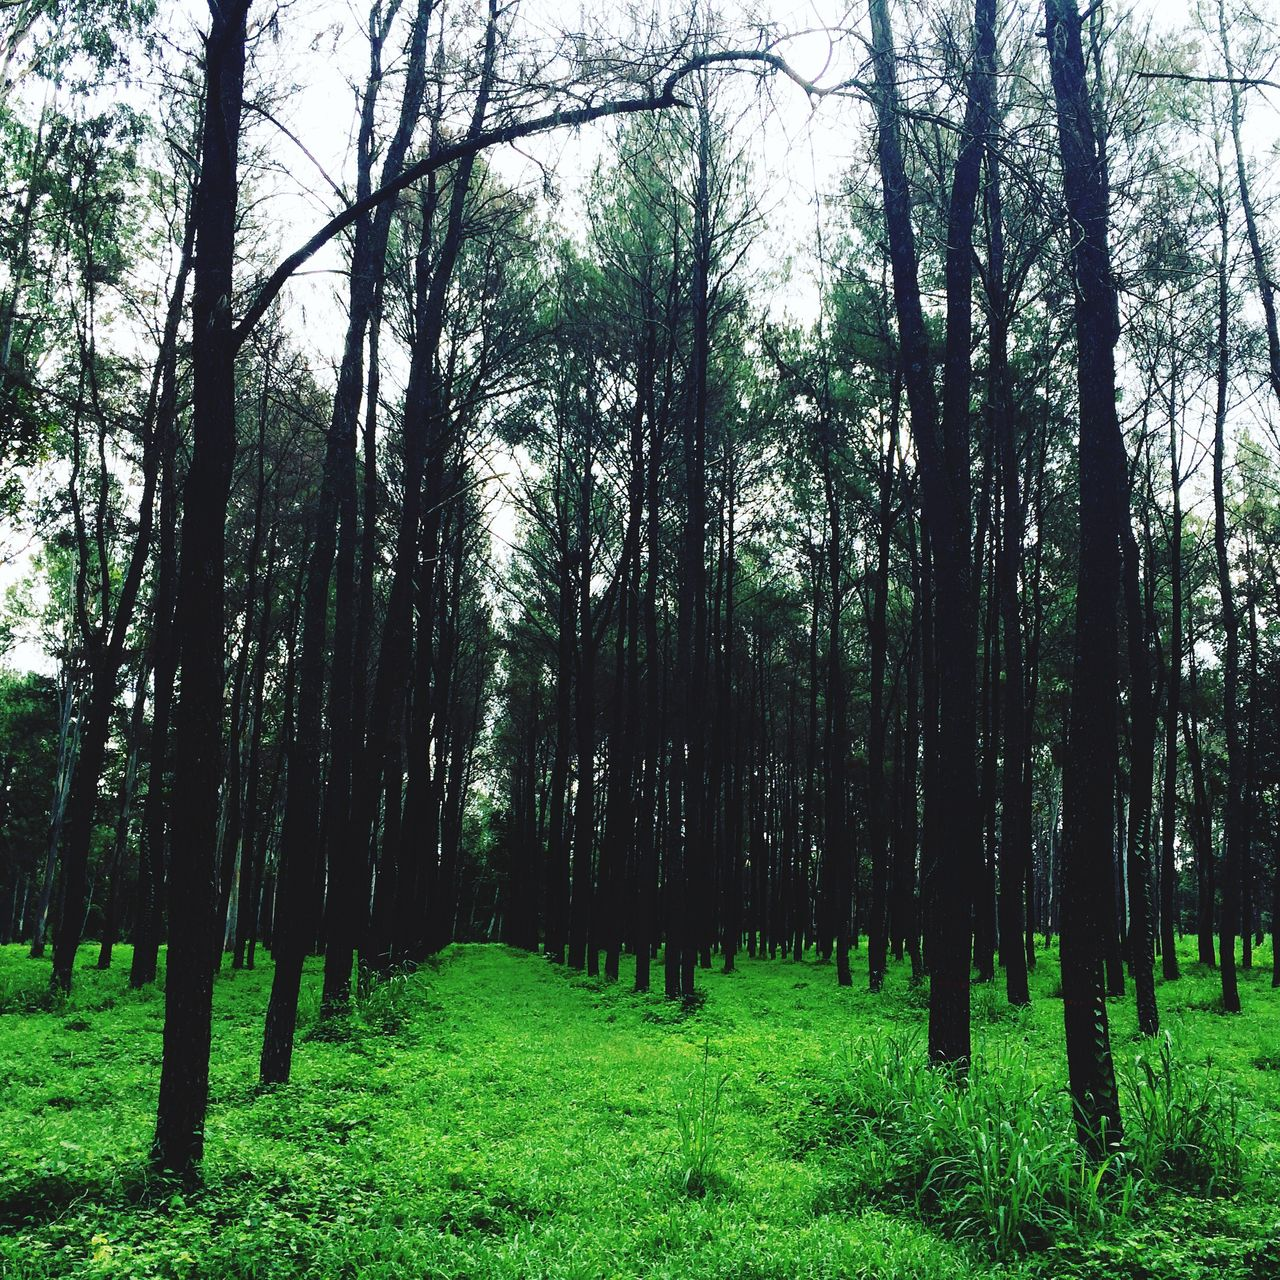 forest, tree, nature, growth, tranquility, beauty in nature, tree trunk, grass, tranquil scene, green color, landscape, scenics, no people, outdoors, day